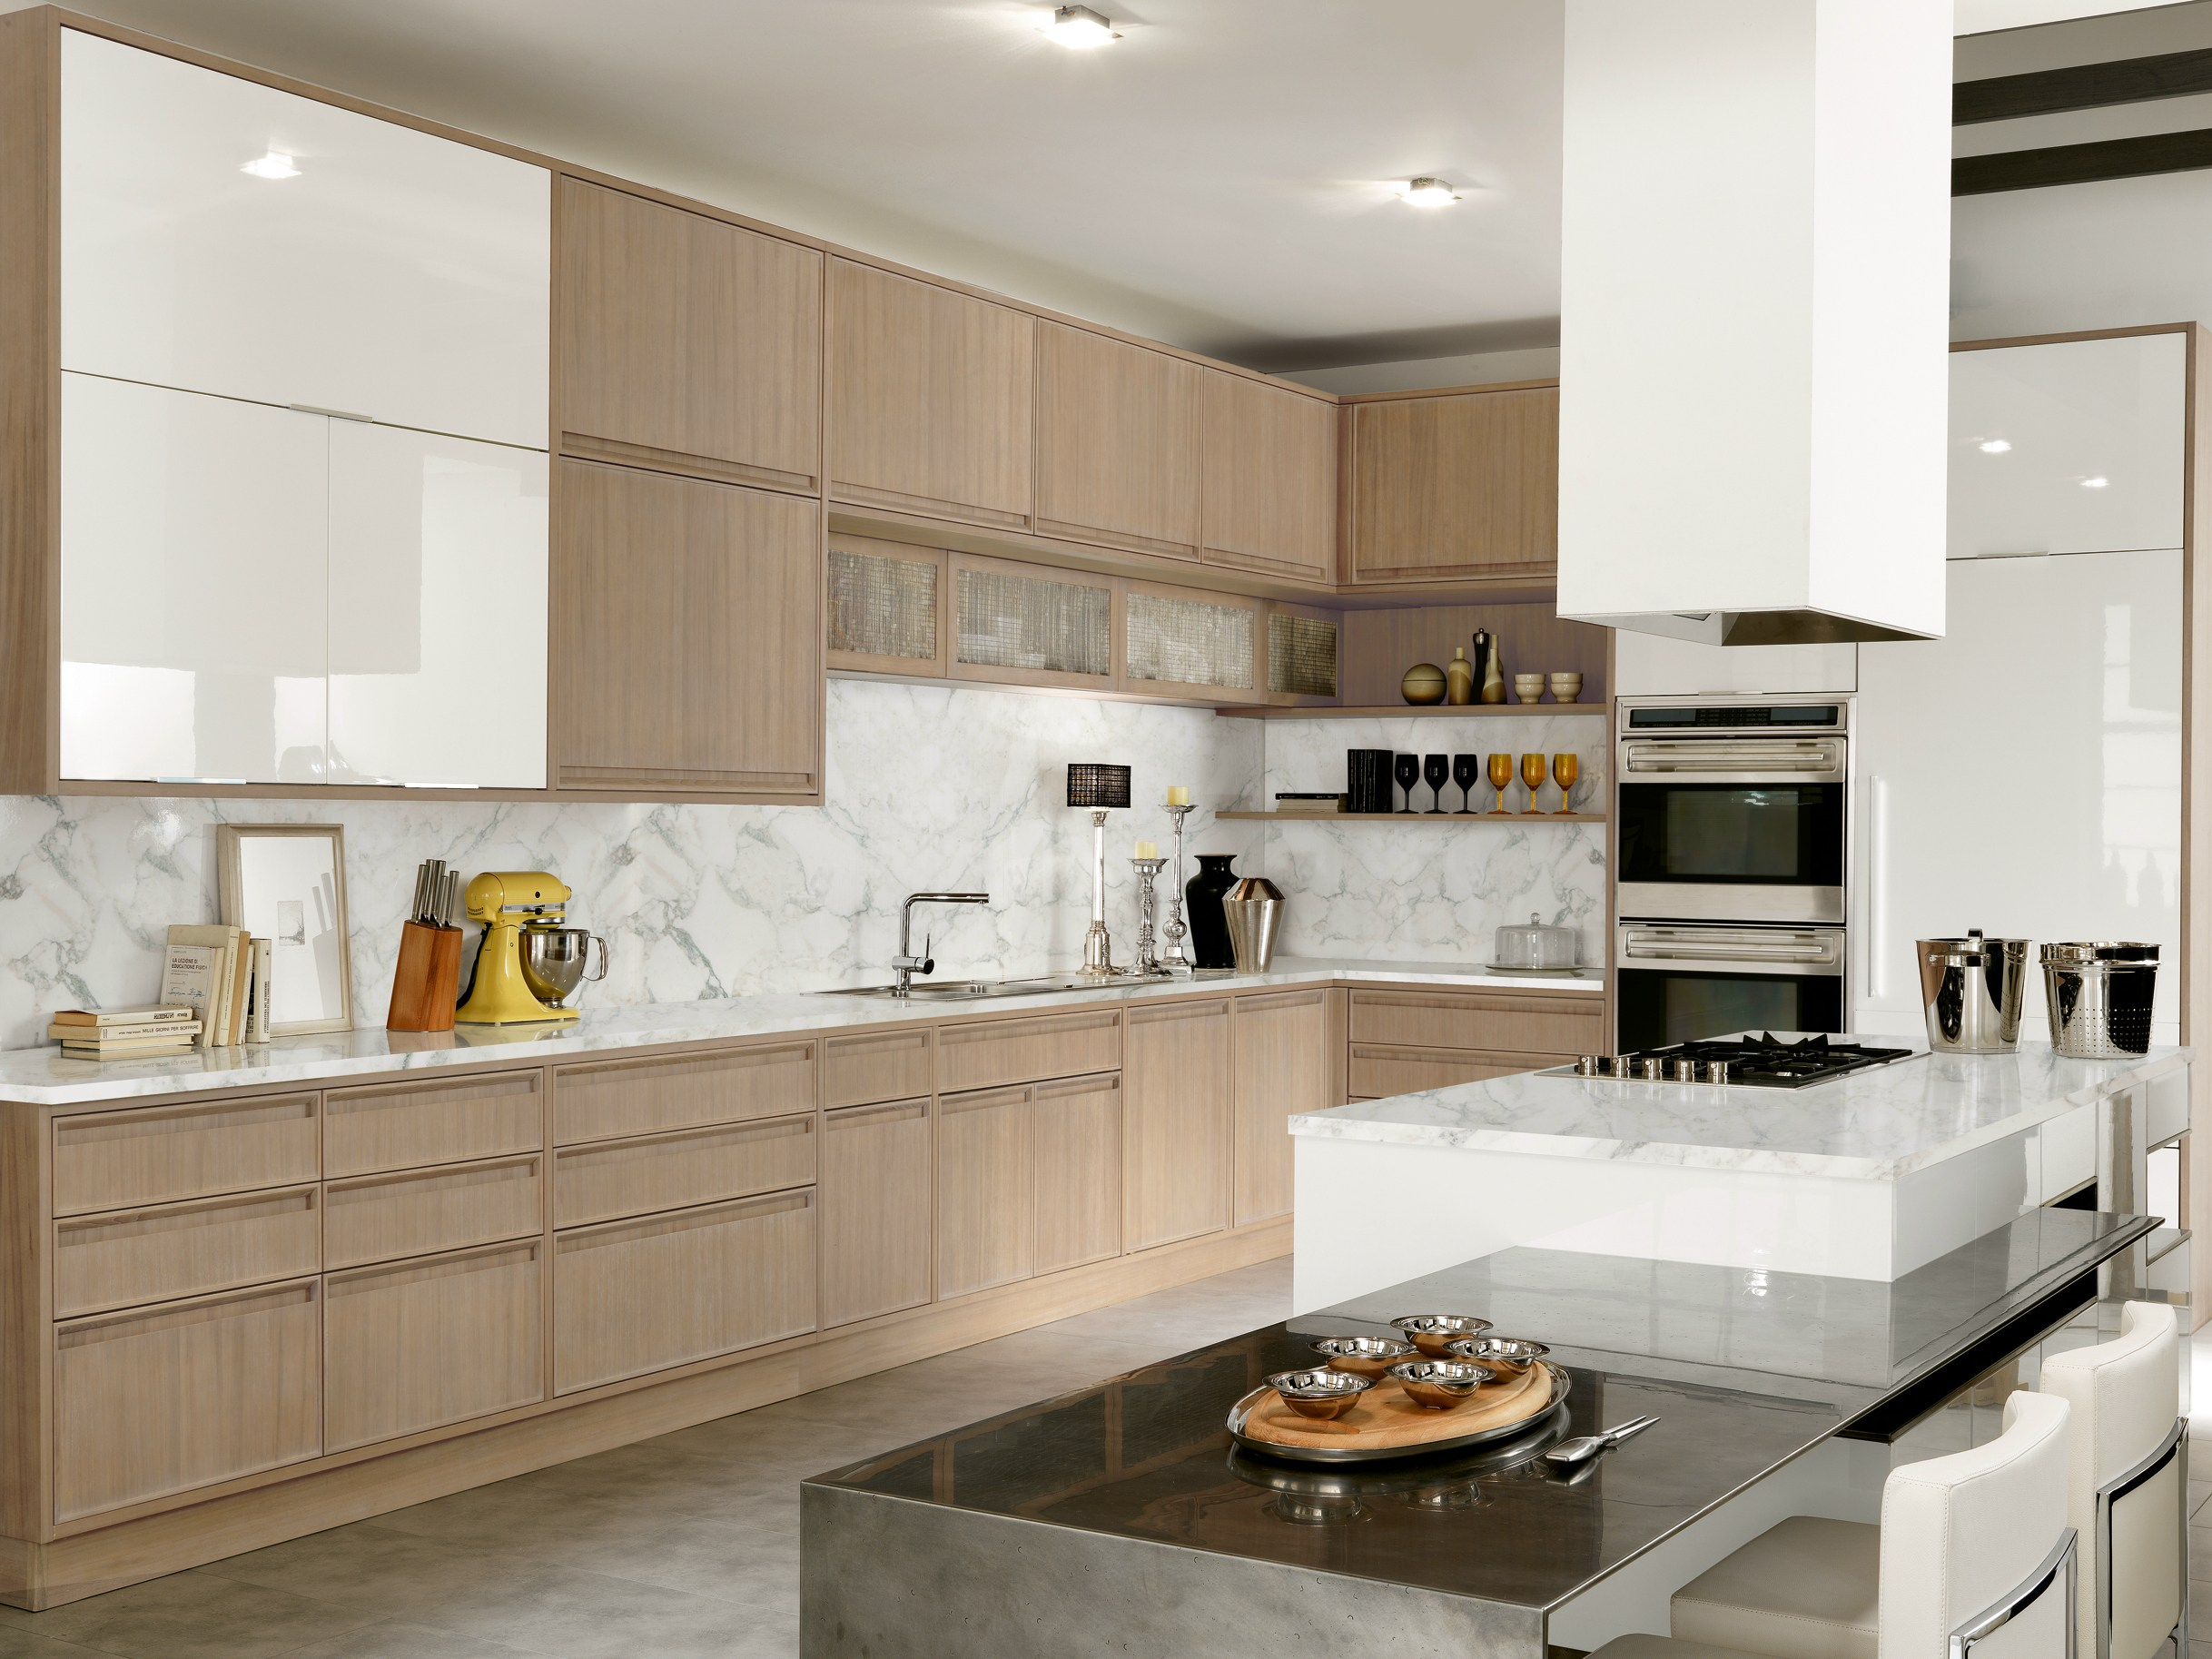 Timeline cucina in legno by aster cucine for Cucine in legno con isola